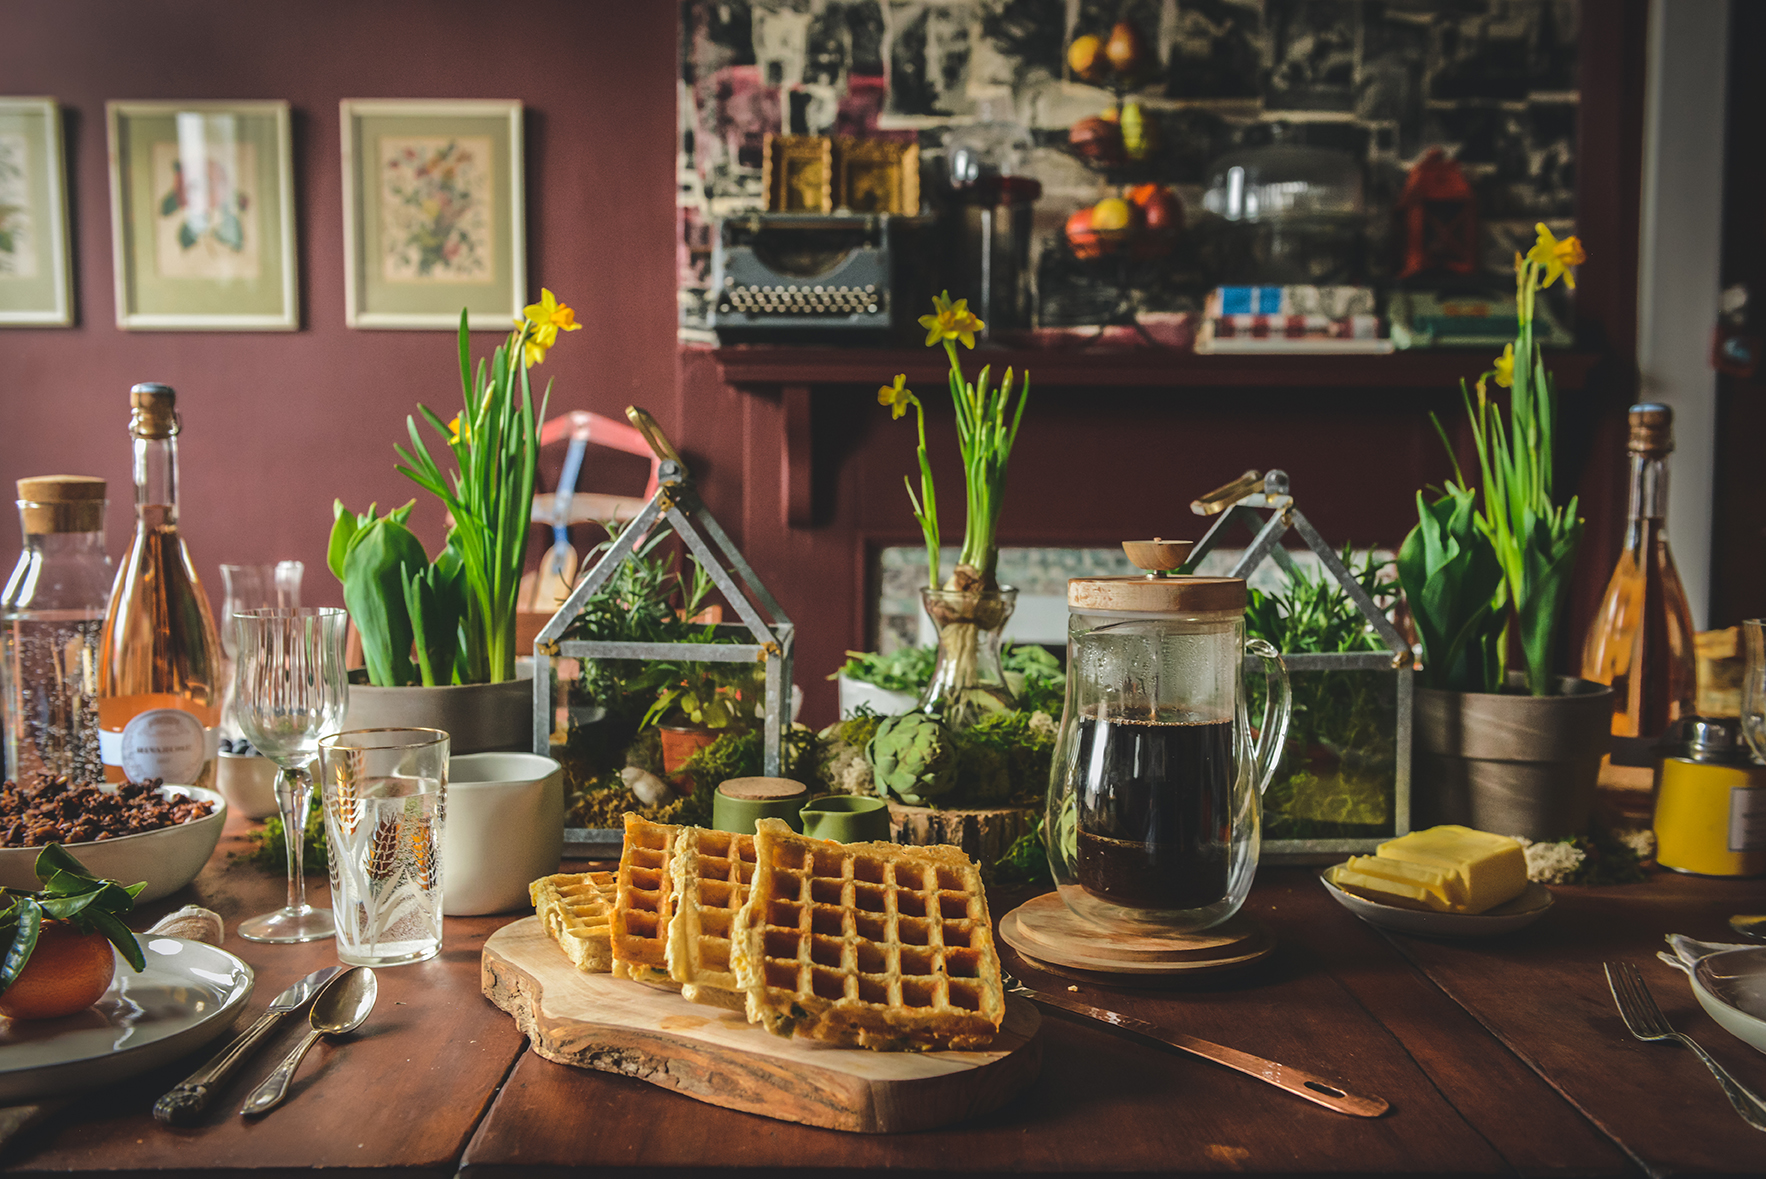 How To Host A Gluten Free Easter Brunch For All To Enjoy